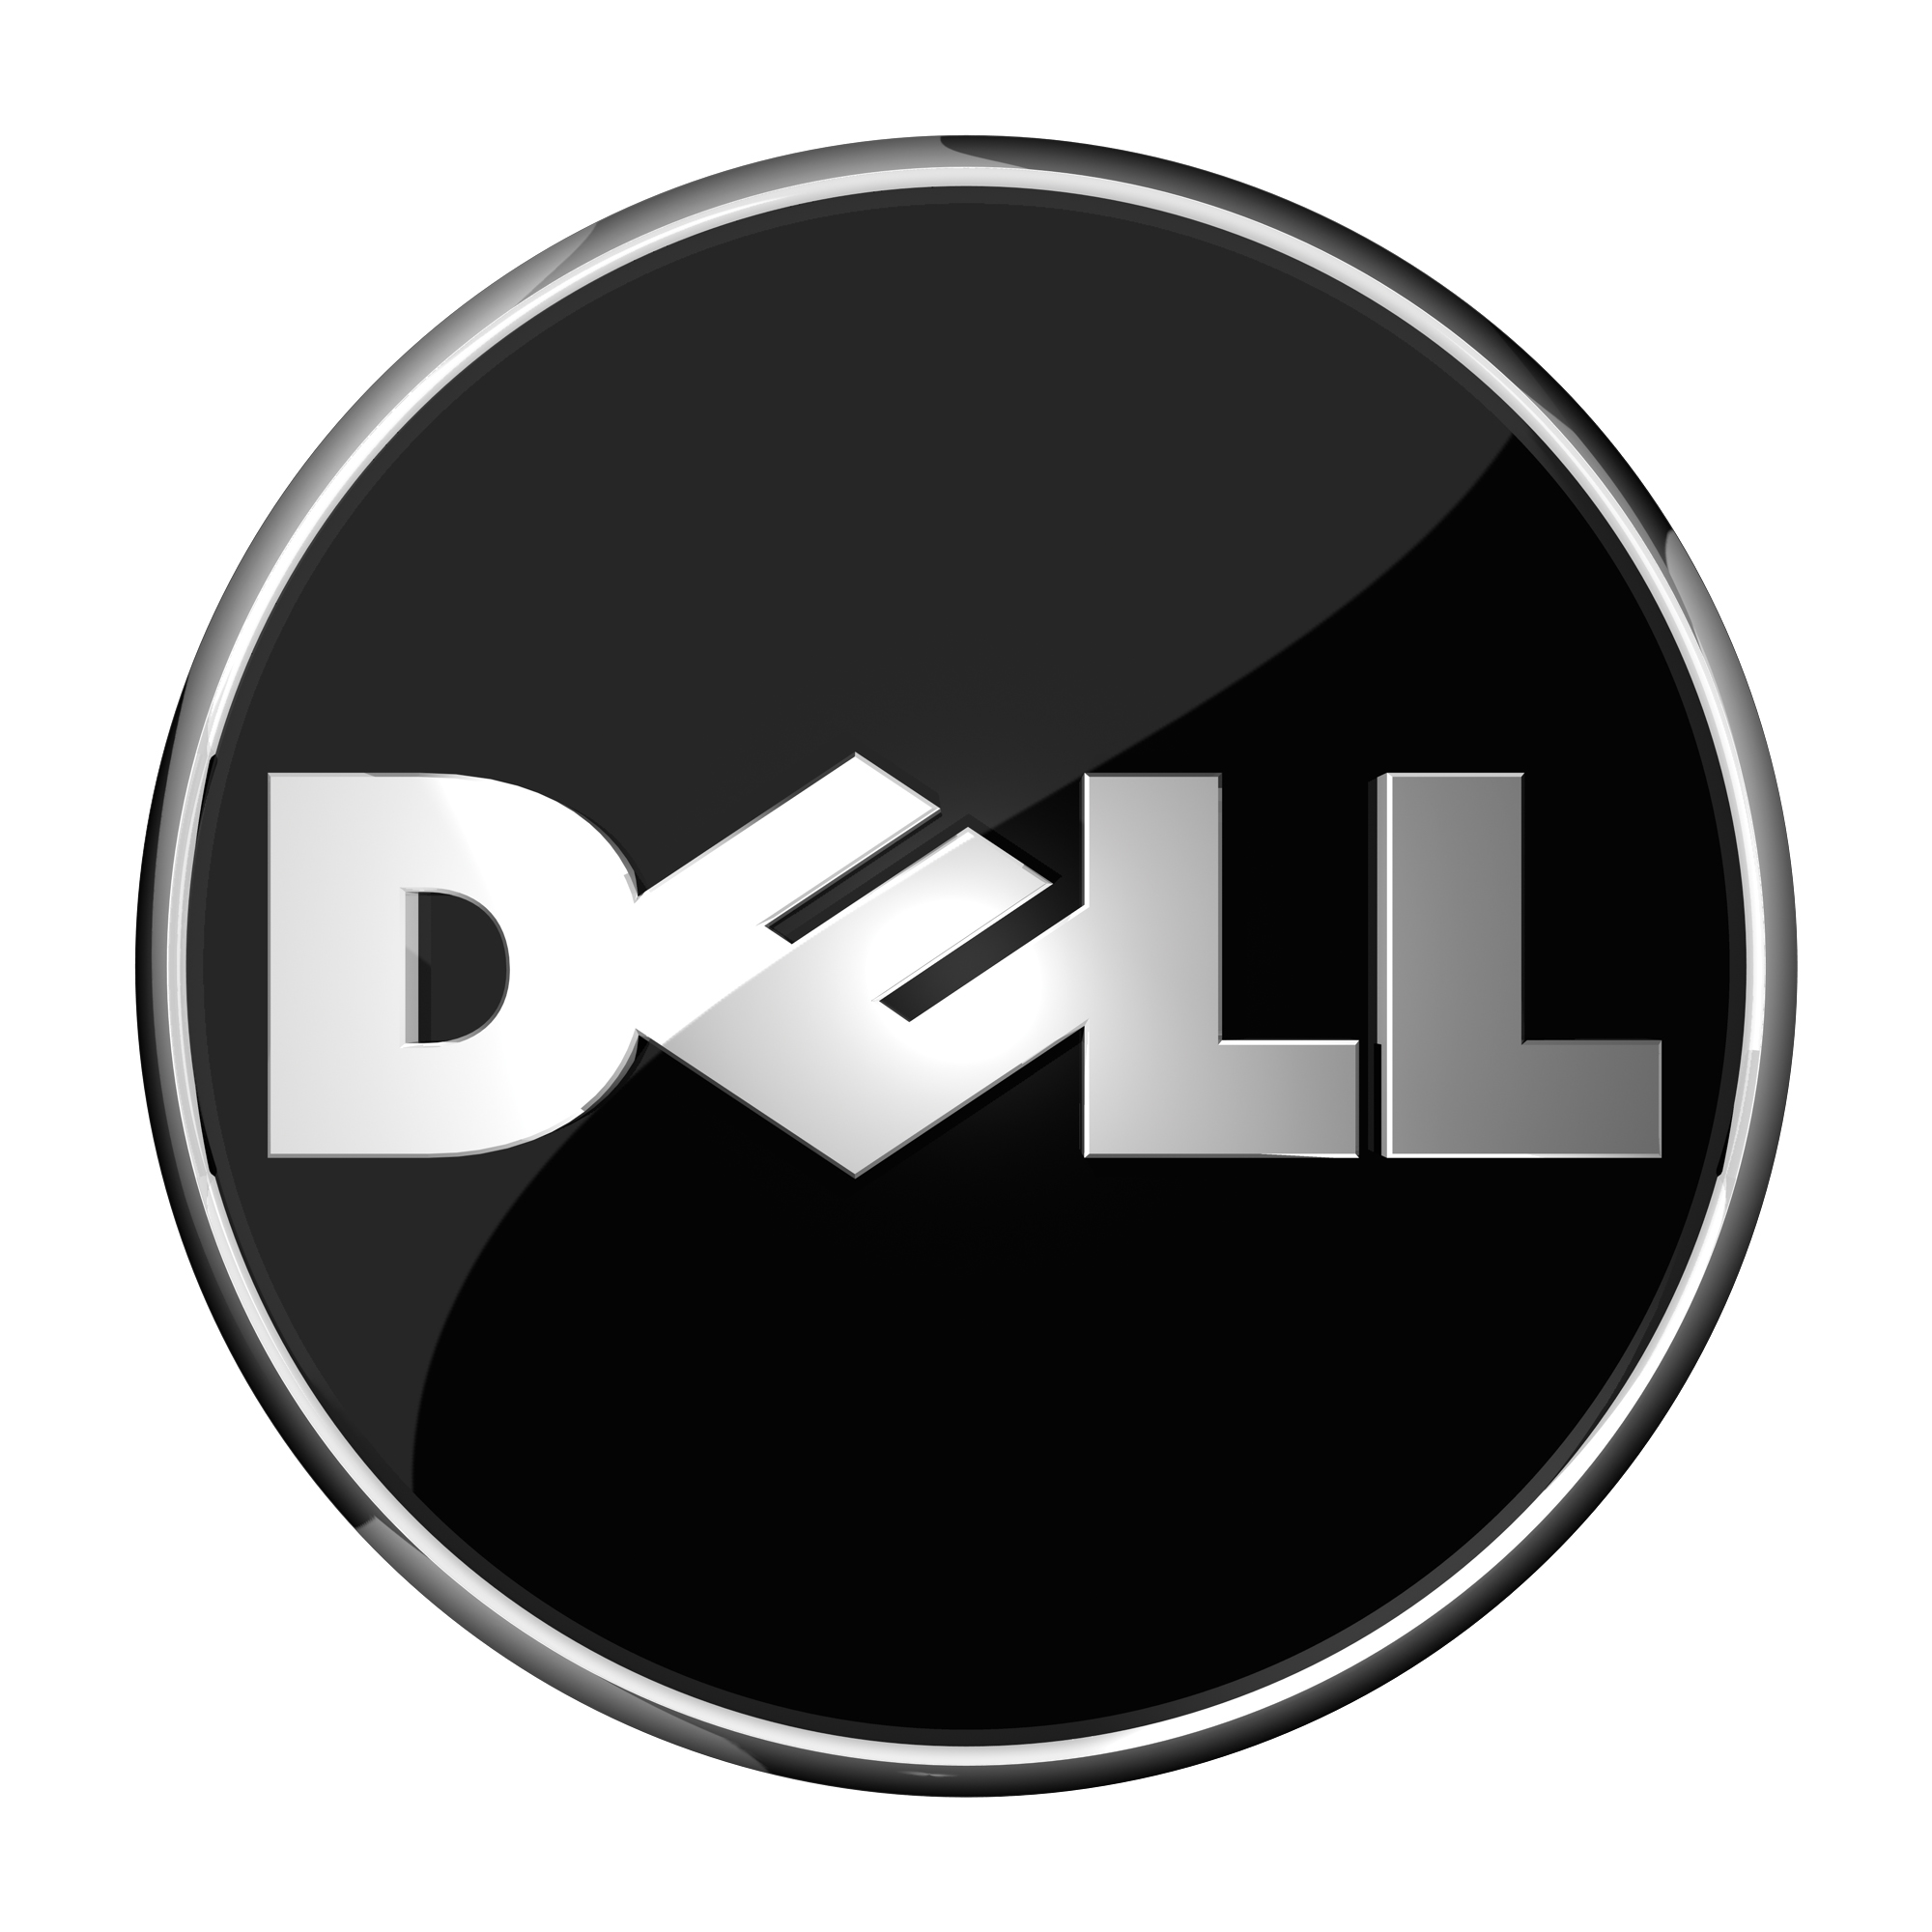 Png Dell Logo Transparent #11730.